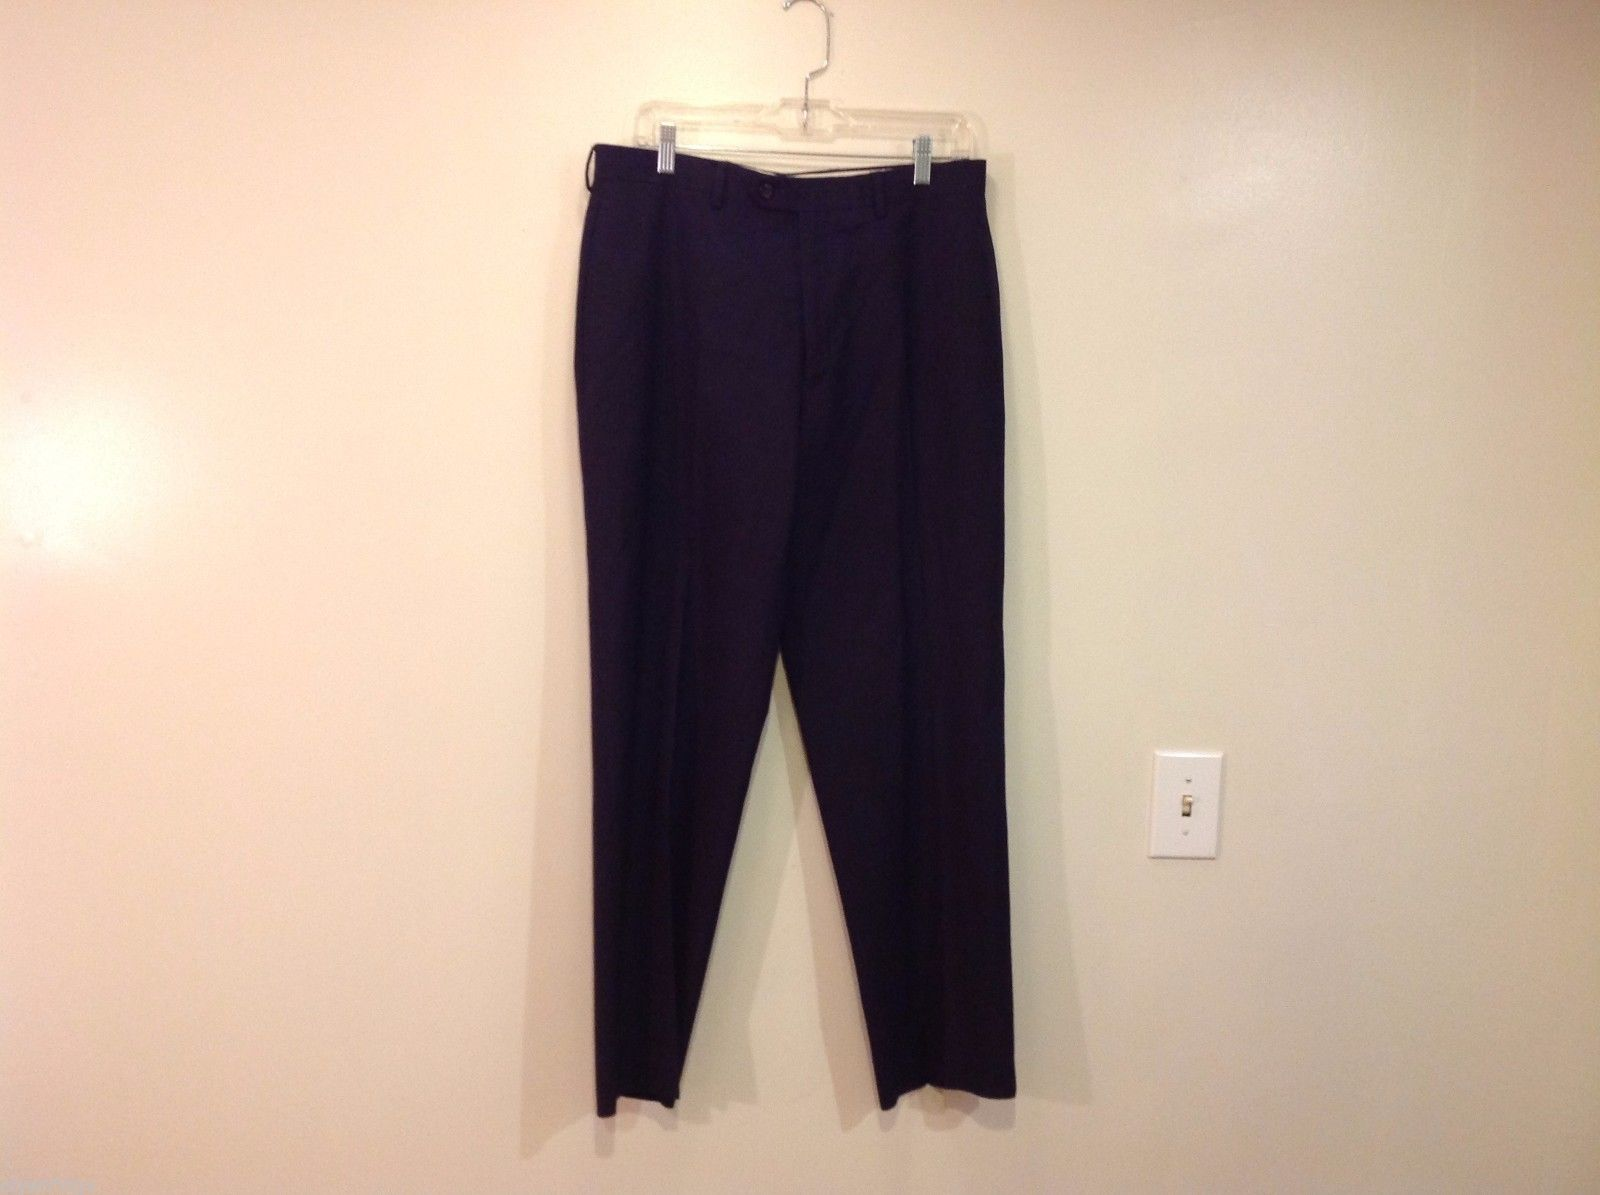 Ralph Lauren Total Comfort Black Dress Pants  40 inch pant leg size 33W/30L